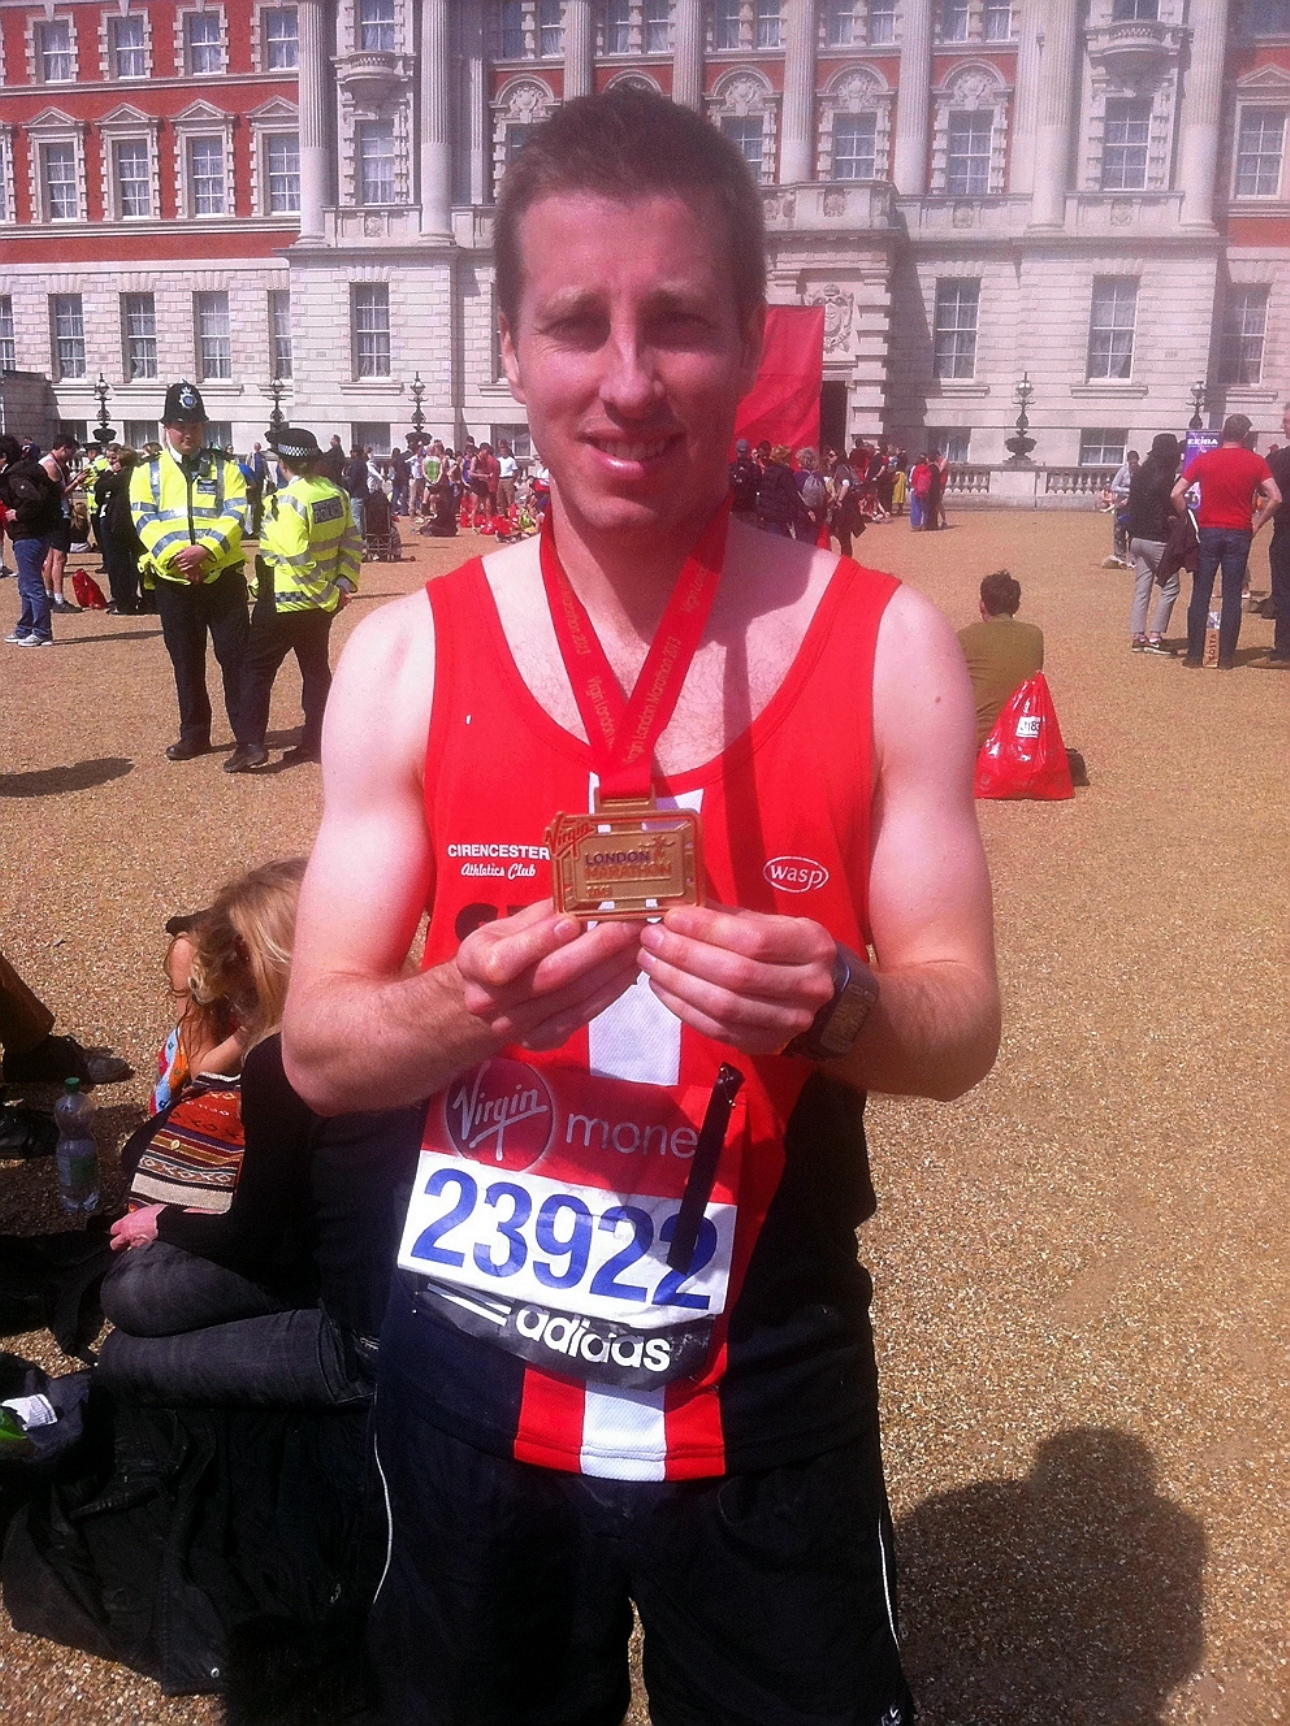 Simon Campbell of Cirencester Athletics Club after last year's London Marathon